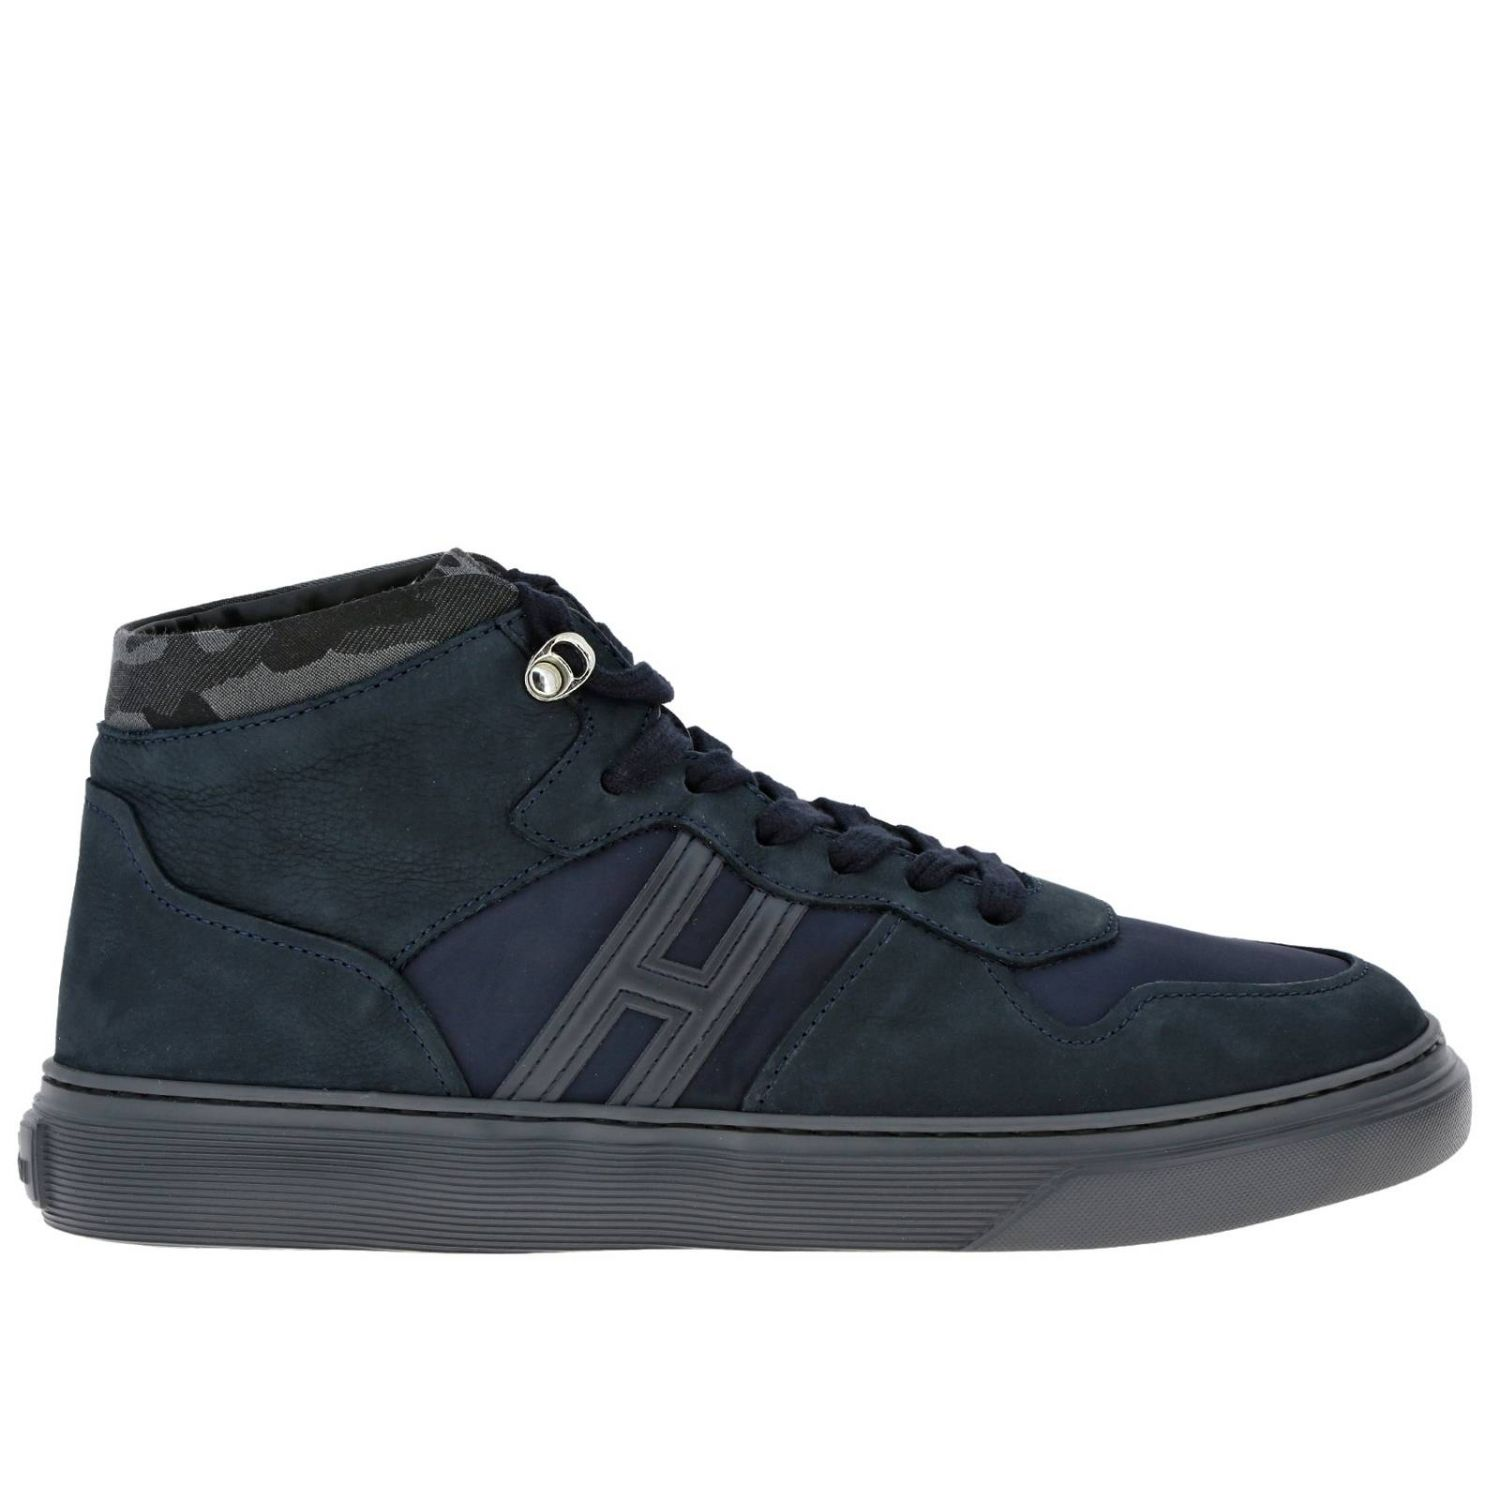 365 suede and nylon Sneakers Hogan Basket with camouflage detail blue 1